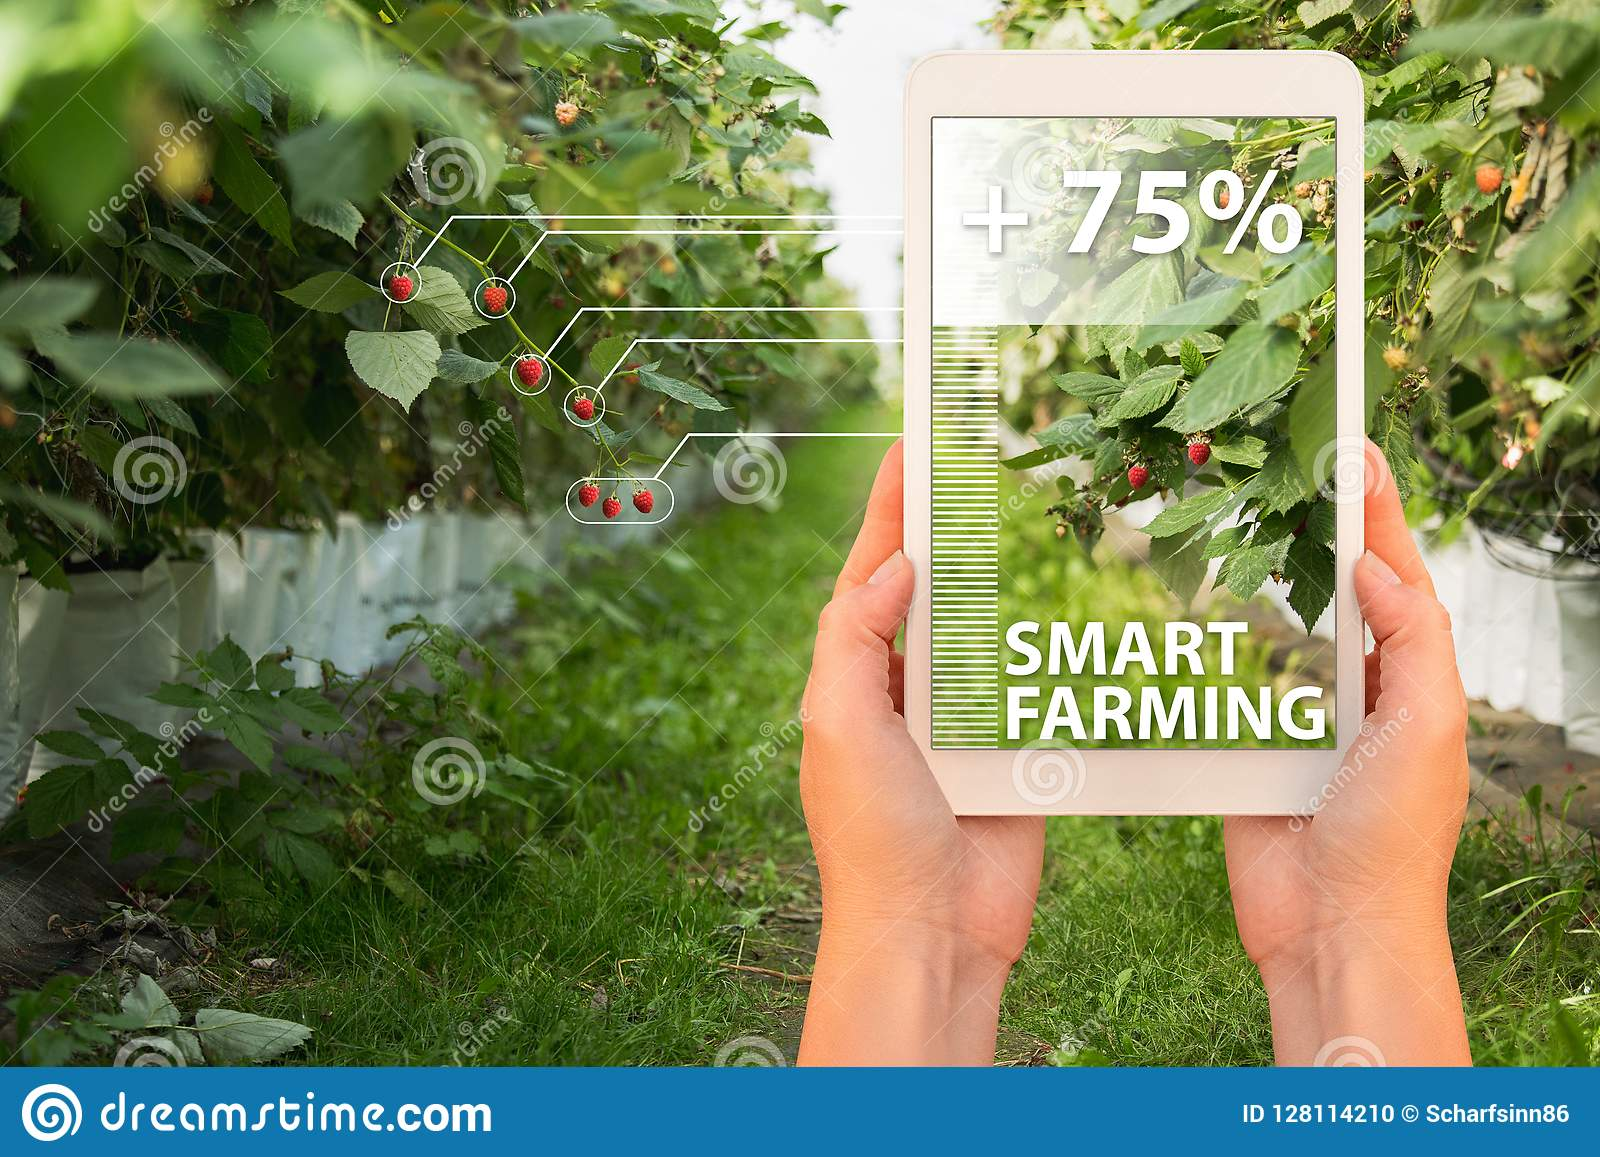 Smart Farming And Digital Agriculture Concept  Stock Photo - Image